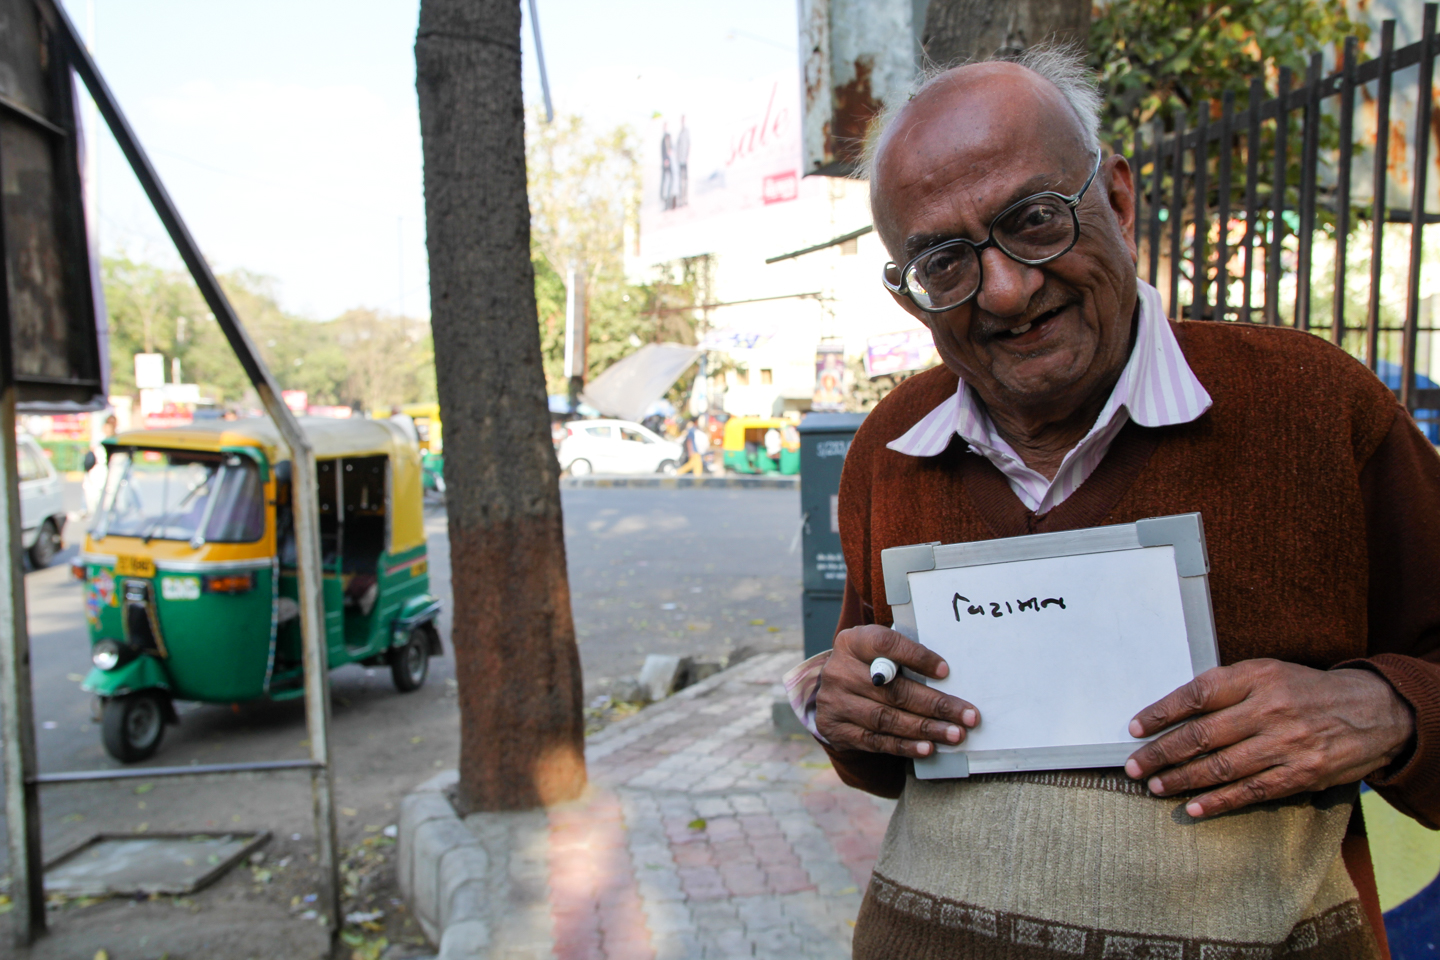 Arvind, a retired immigration officer who lives in Ahmedabad, Gujarat, drinks tea for its health benefits. 'Tea is very healthy. It has lots of vitamins. But I do not drink it with milk and sugar. I am 80 years old, a retired man. I am just relaxing. This is what senior citizens do.'